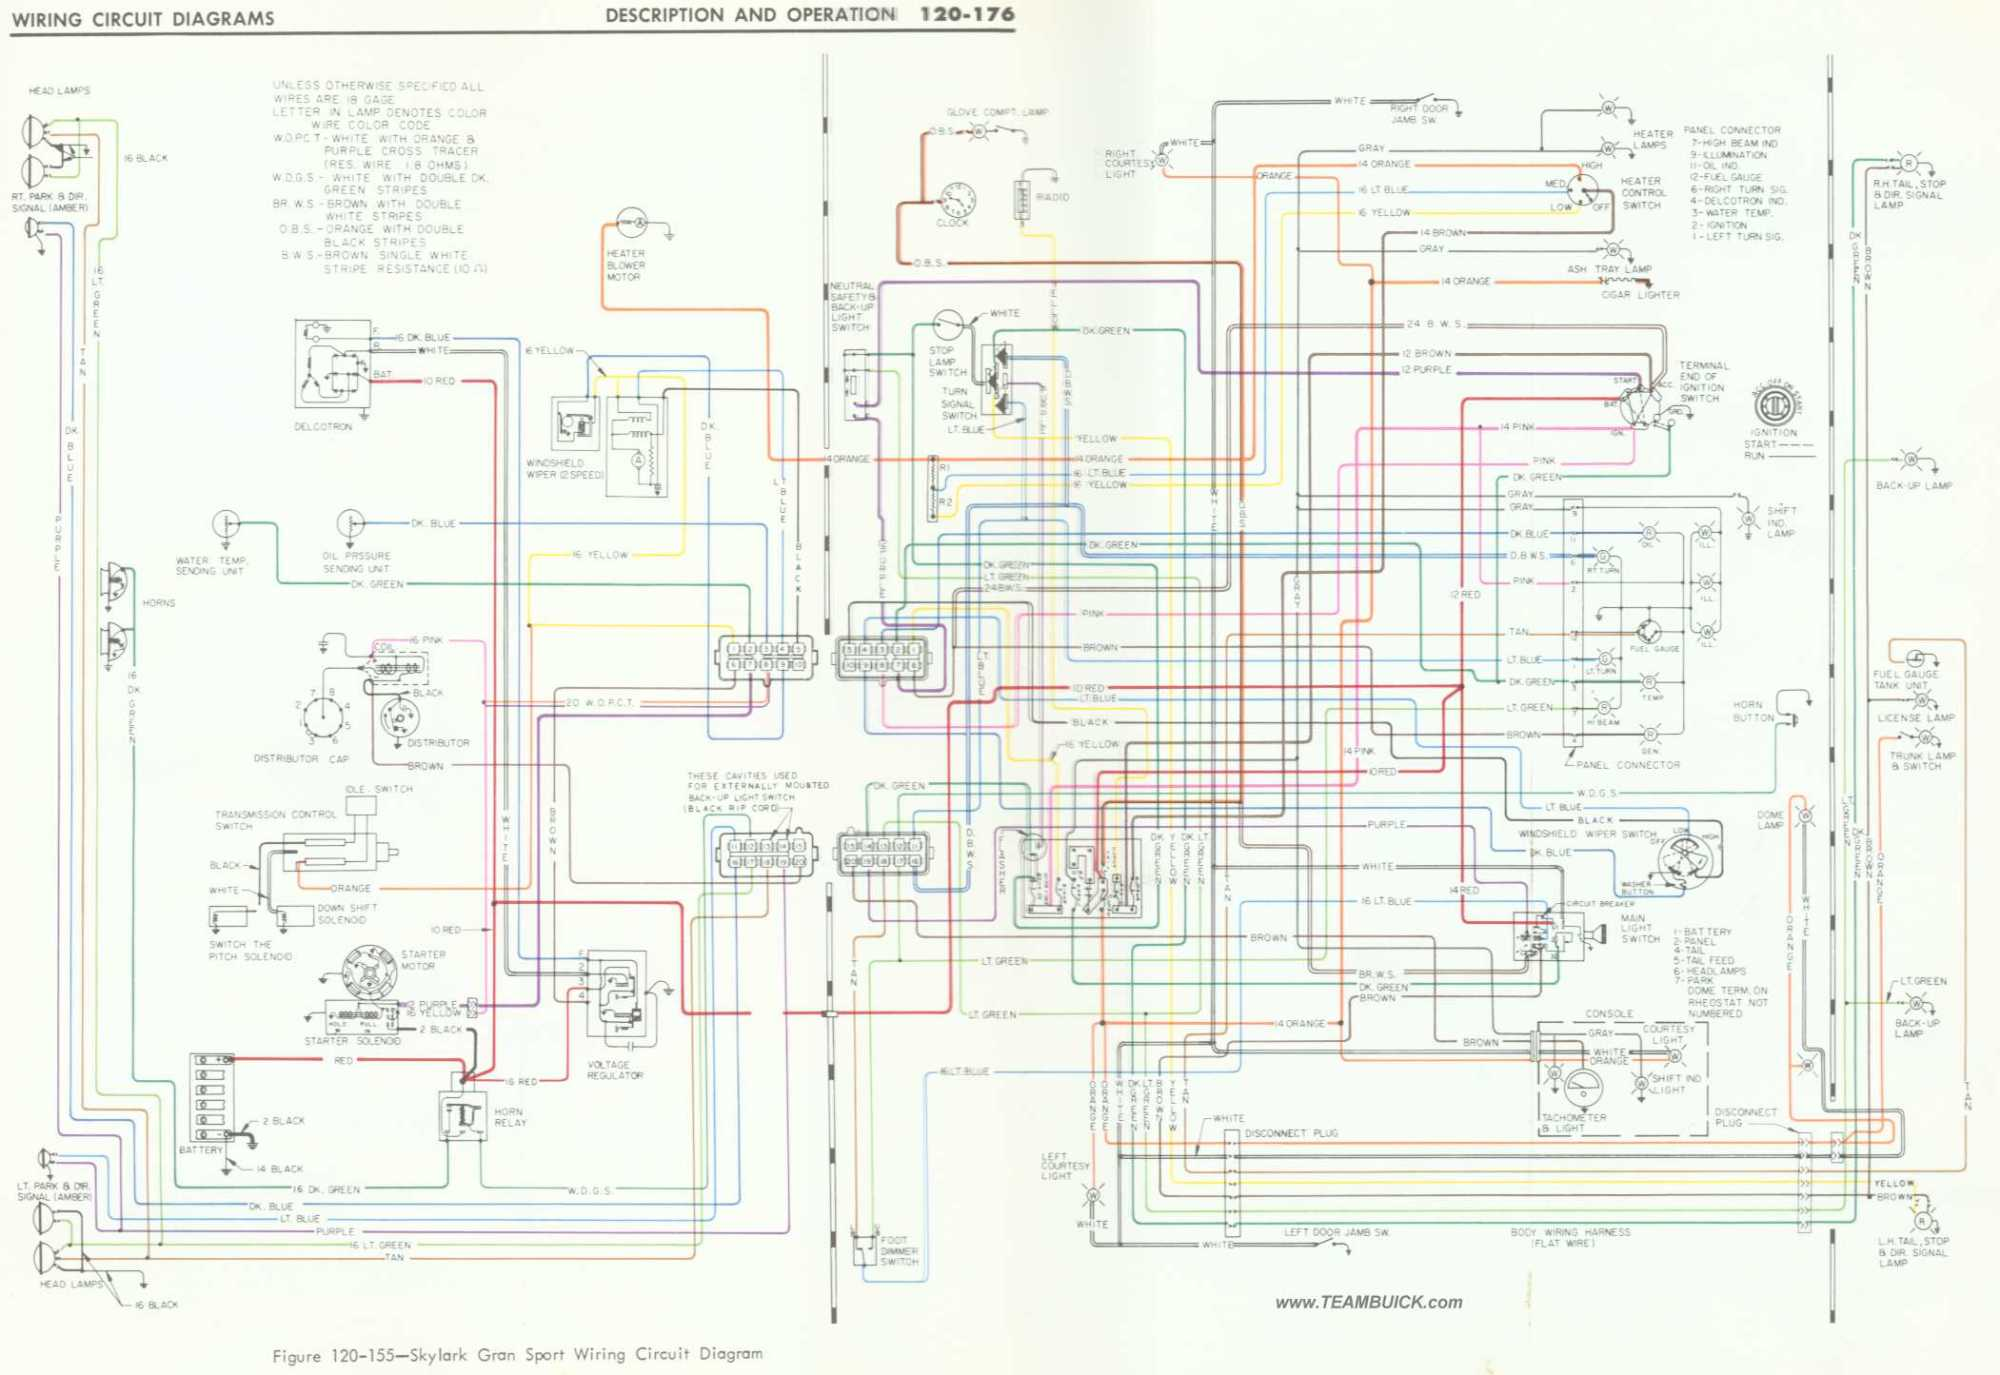 hight resolution of 1966 buick skylark gs wiring diagram right click to save to your computer